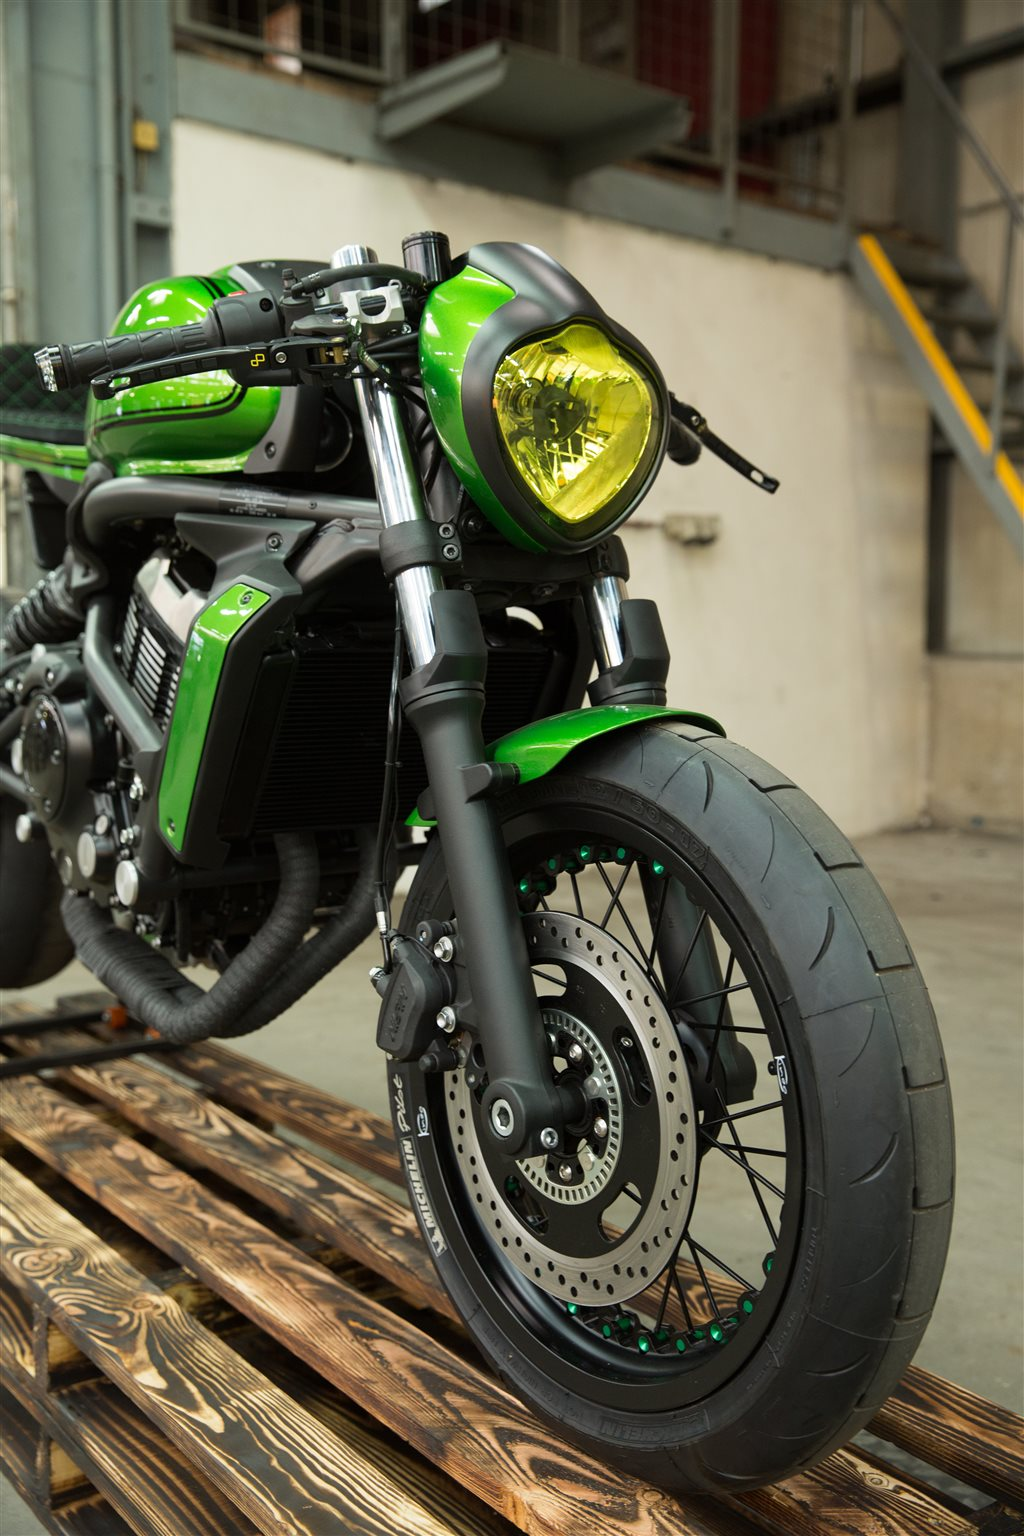 neumotorrad kawasaki vulcan s cafe custom bike. Black Bedroom Furniture Sets. Home Design Ideas